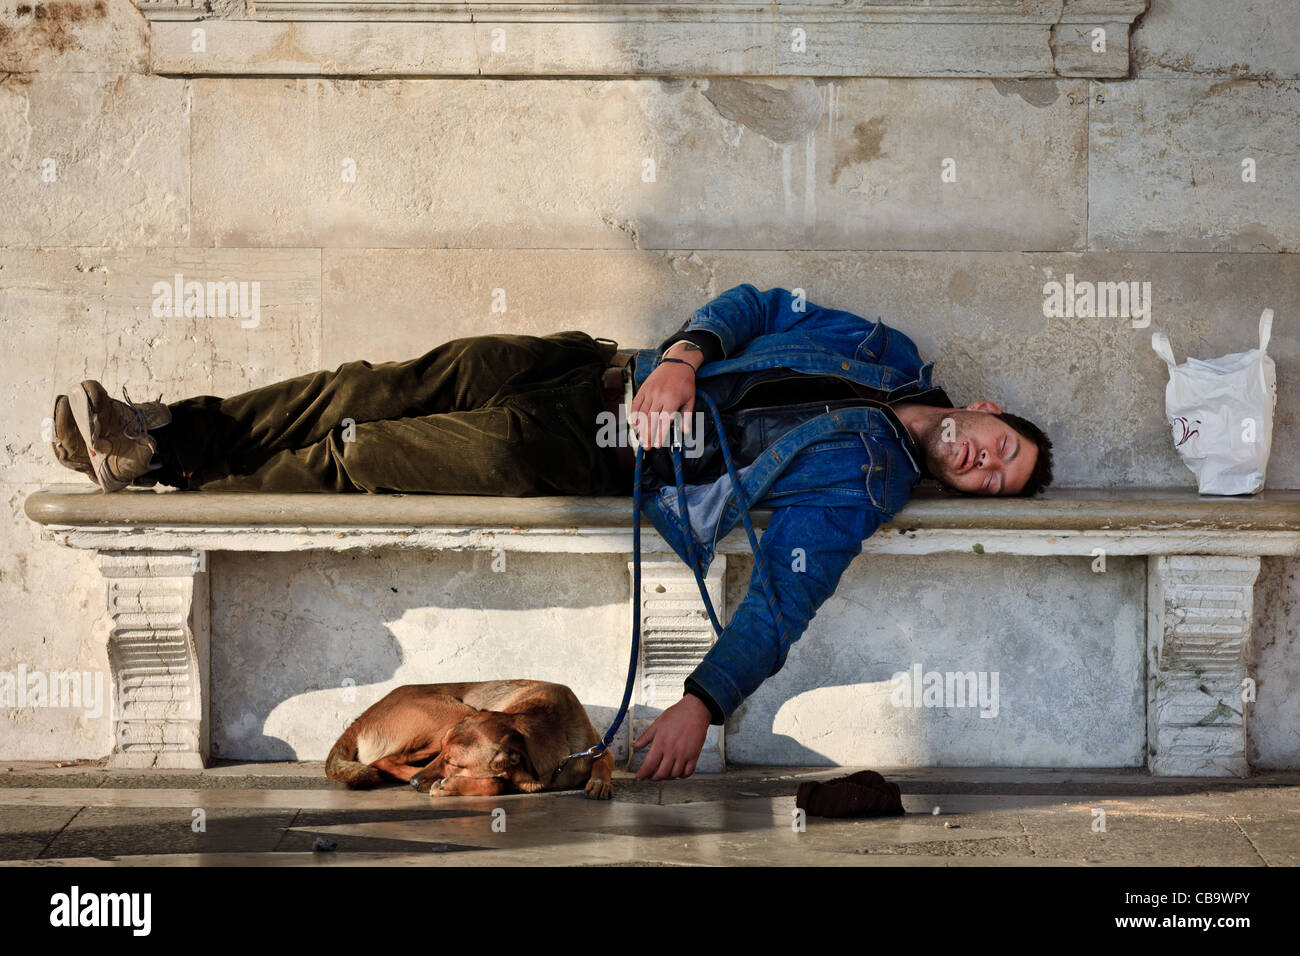 Homeless man with his dog asleep on a bench in Venice, Italy - Stock Image